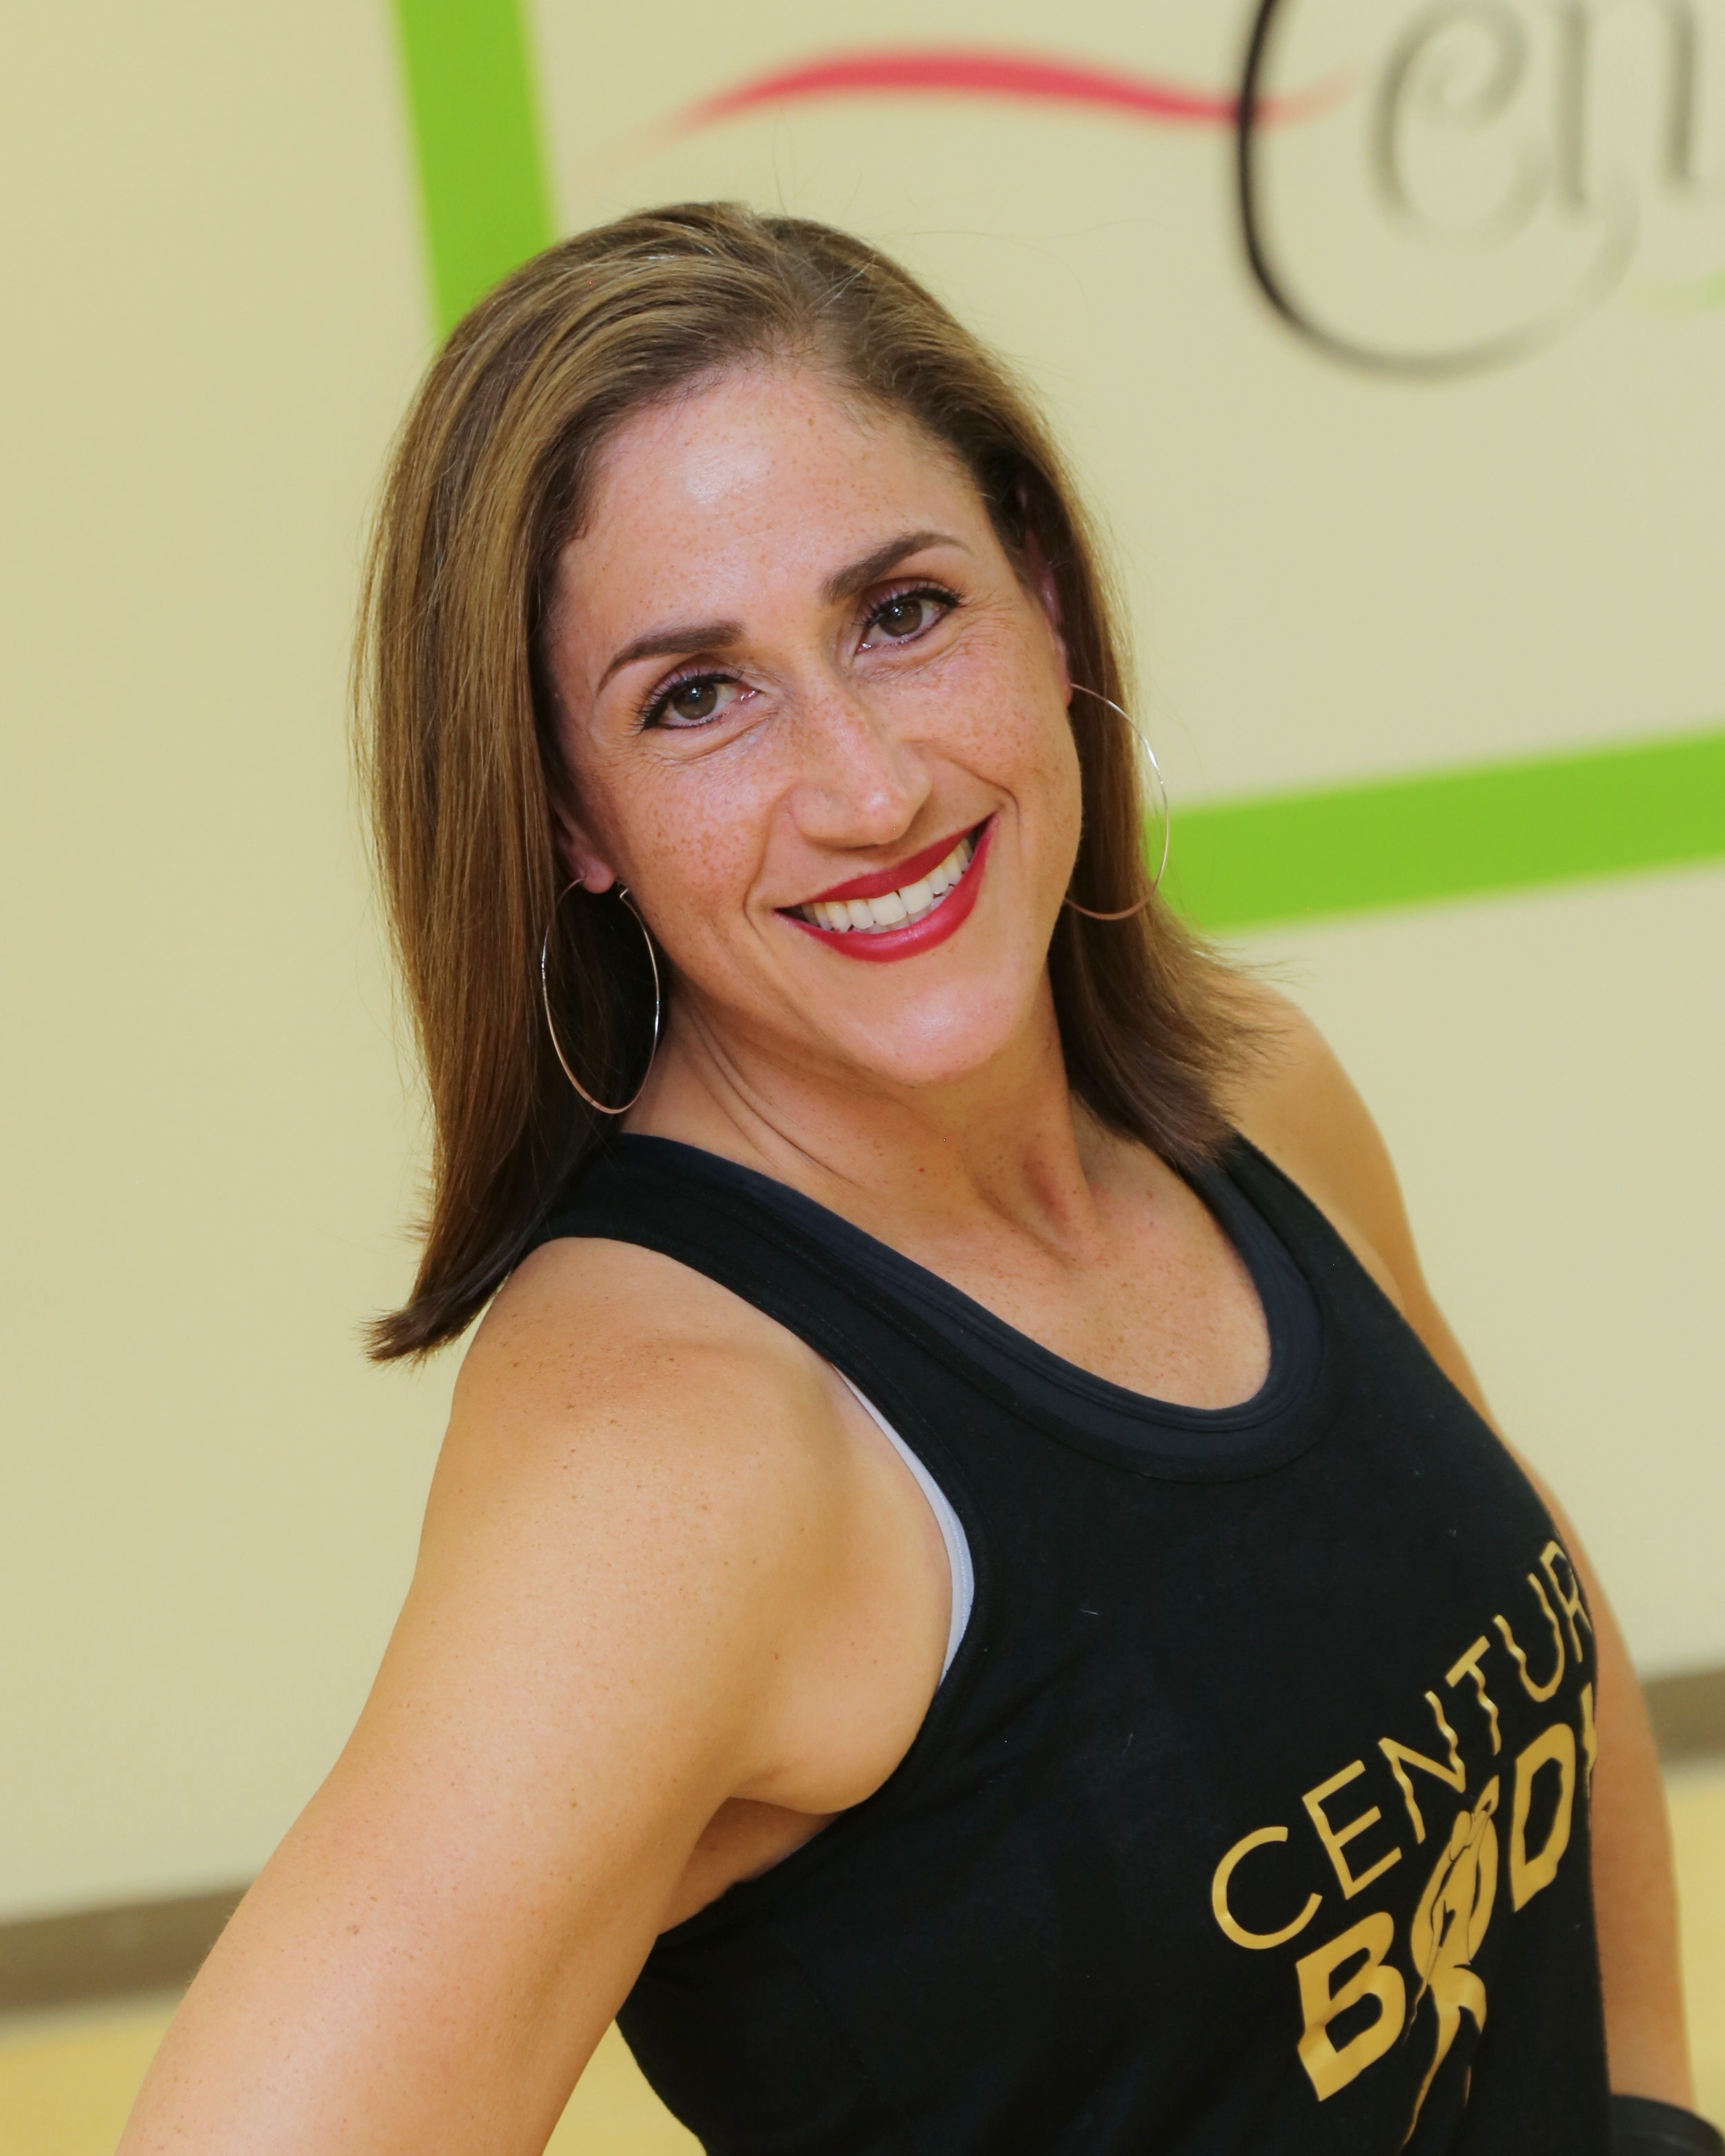 María López Schoenherr   I'd been part of the Century Body family for a year before becoming an instructor. I love, love, LOVE everything about Zumba® Fitness — the music, the language, the energy, the sweating! As an instructor, I love sharing the rhythms, movements, language and joy of my culture with the students. Zumba® Fitness is such a personal experience for me because I grew up listening and dancing to this music. It means so much to me to share my upbringing with others and doing it while staying fit is a bonus. I look forward to continue spreading the joy of Zumba® Fitness and maybe even teaching you some Spanish! Come and dance with me!